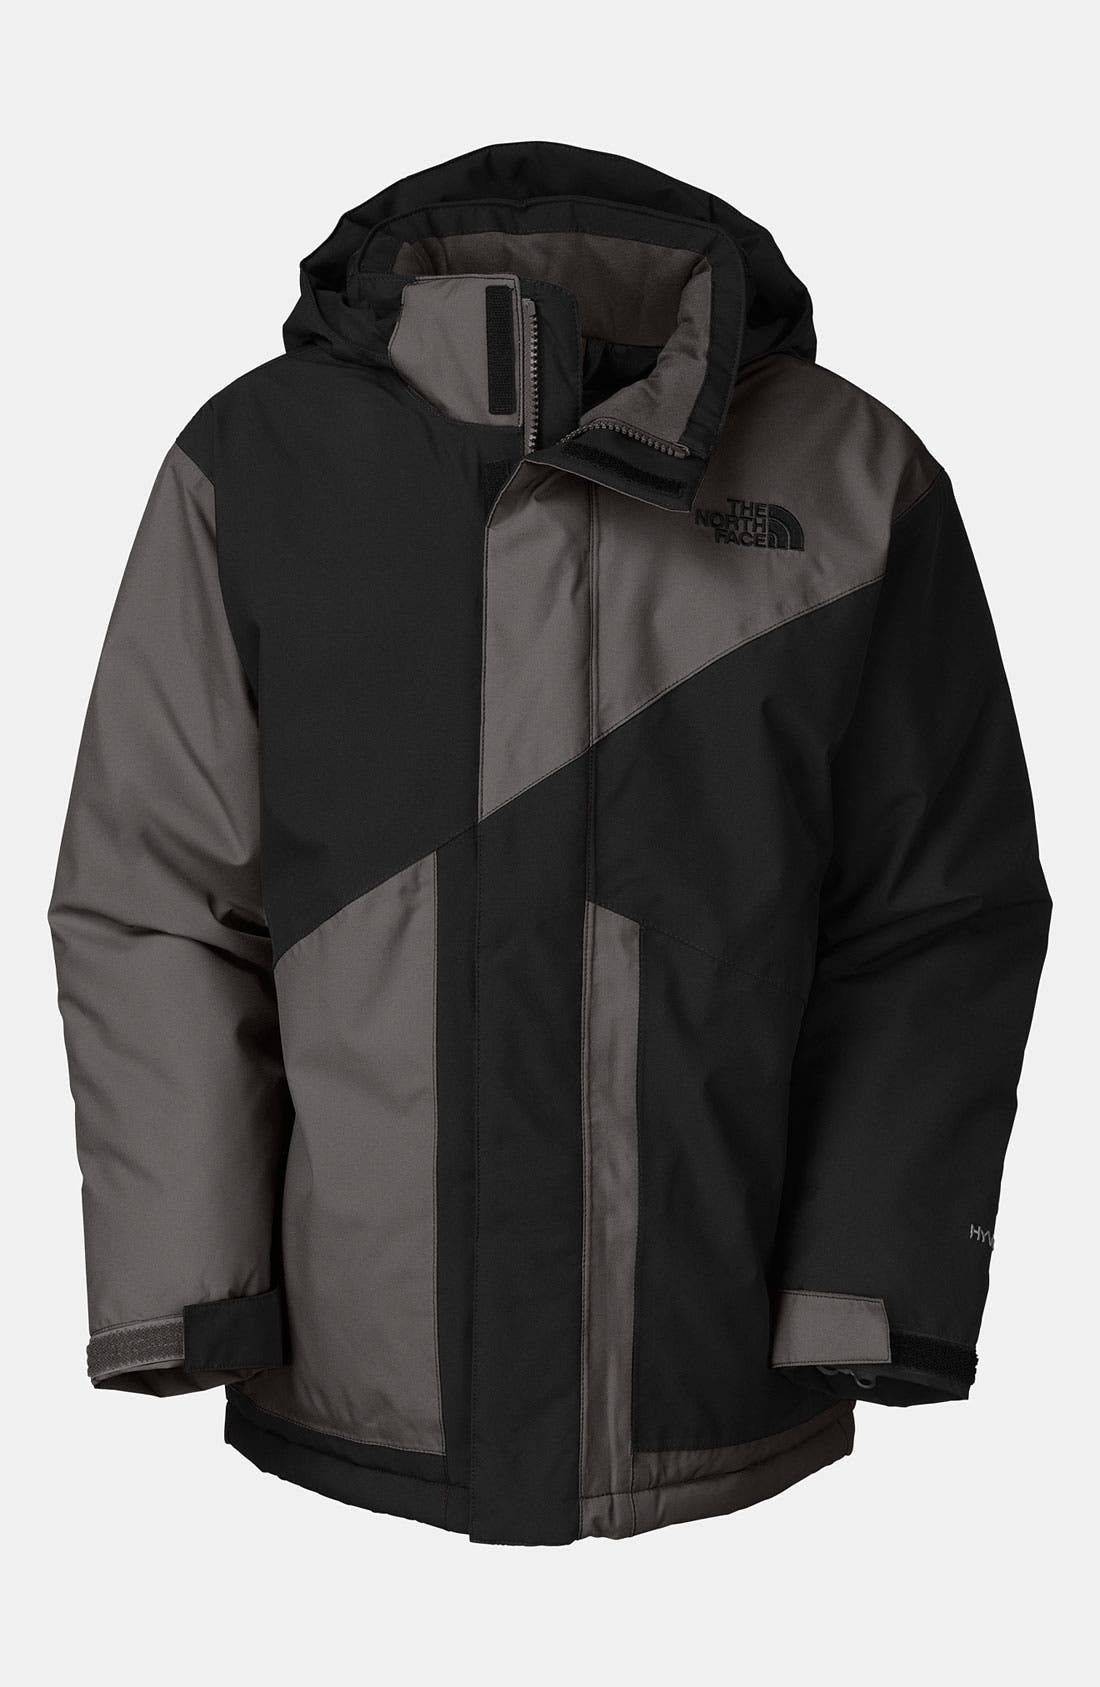 Main Image - The North Face 'Brightten' Insulated Jacket (Big Boys)